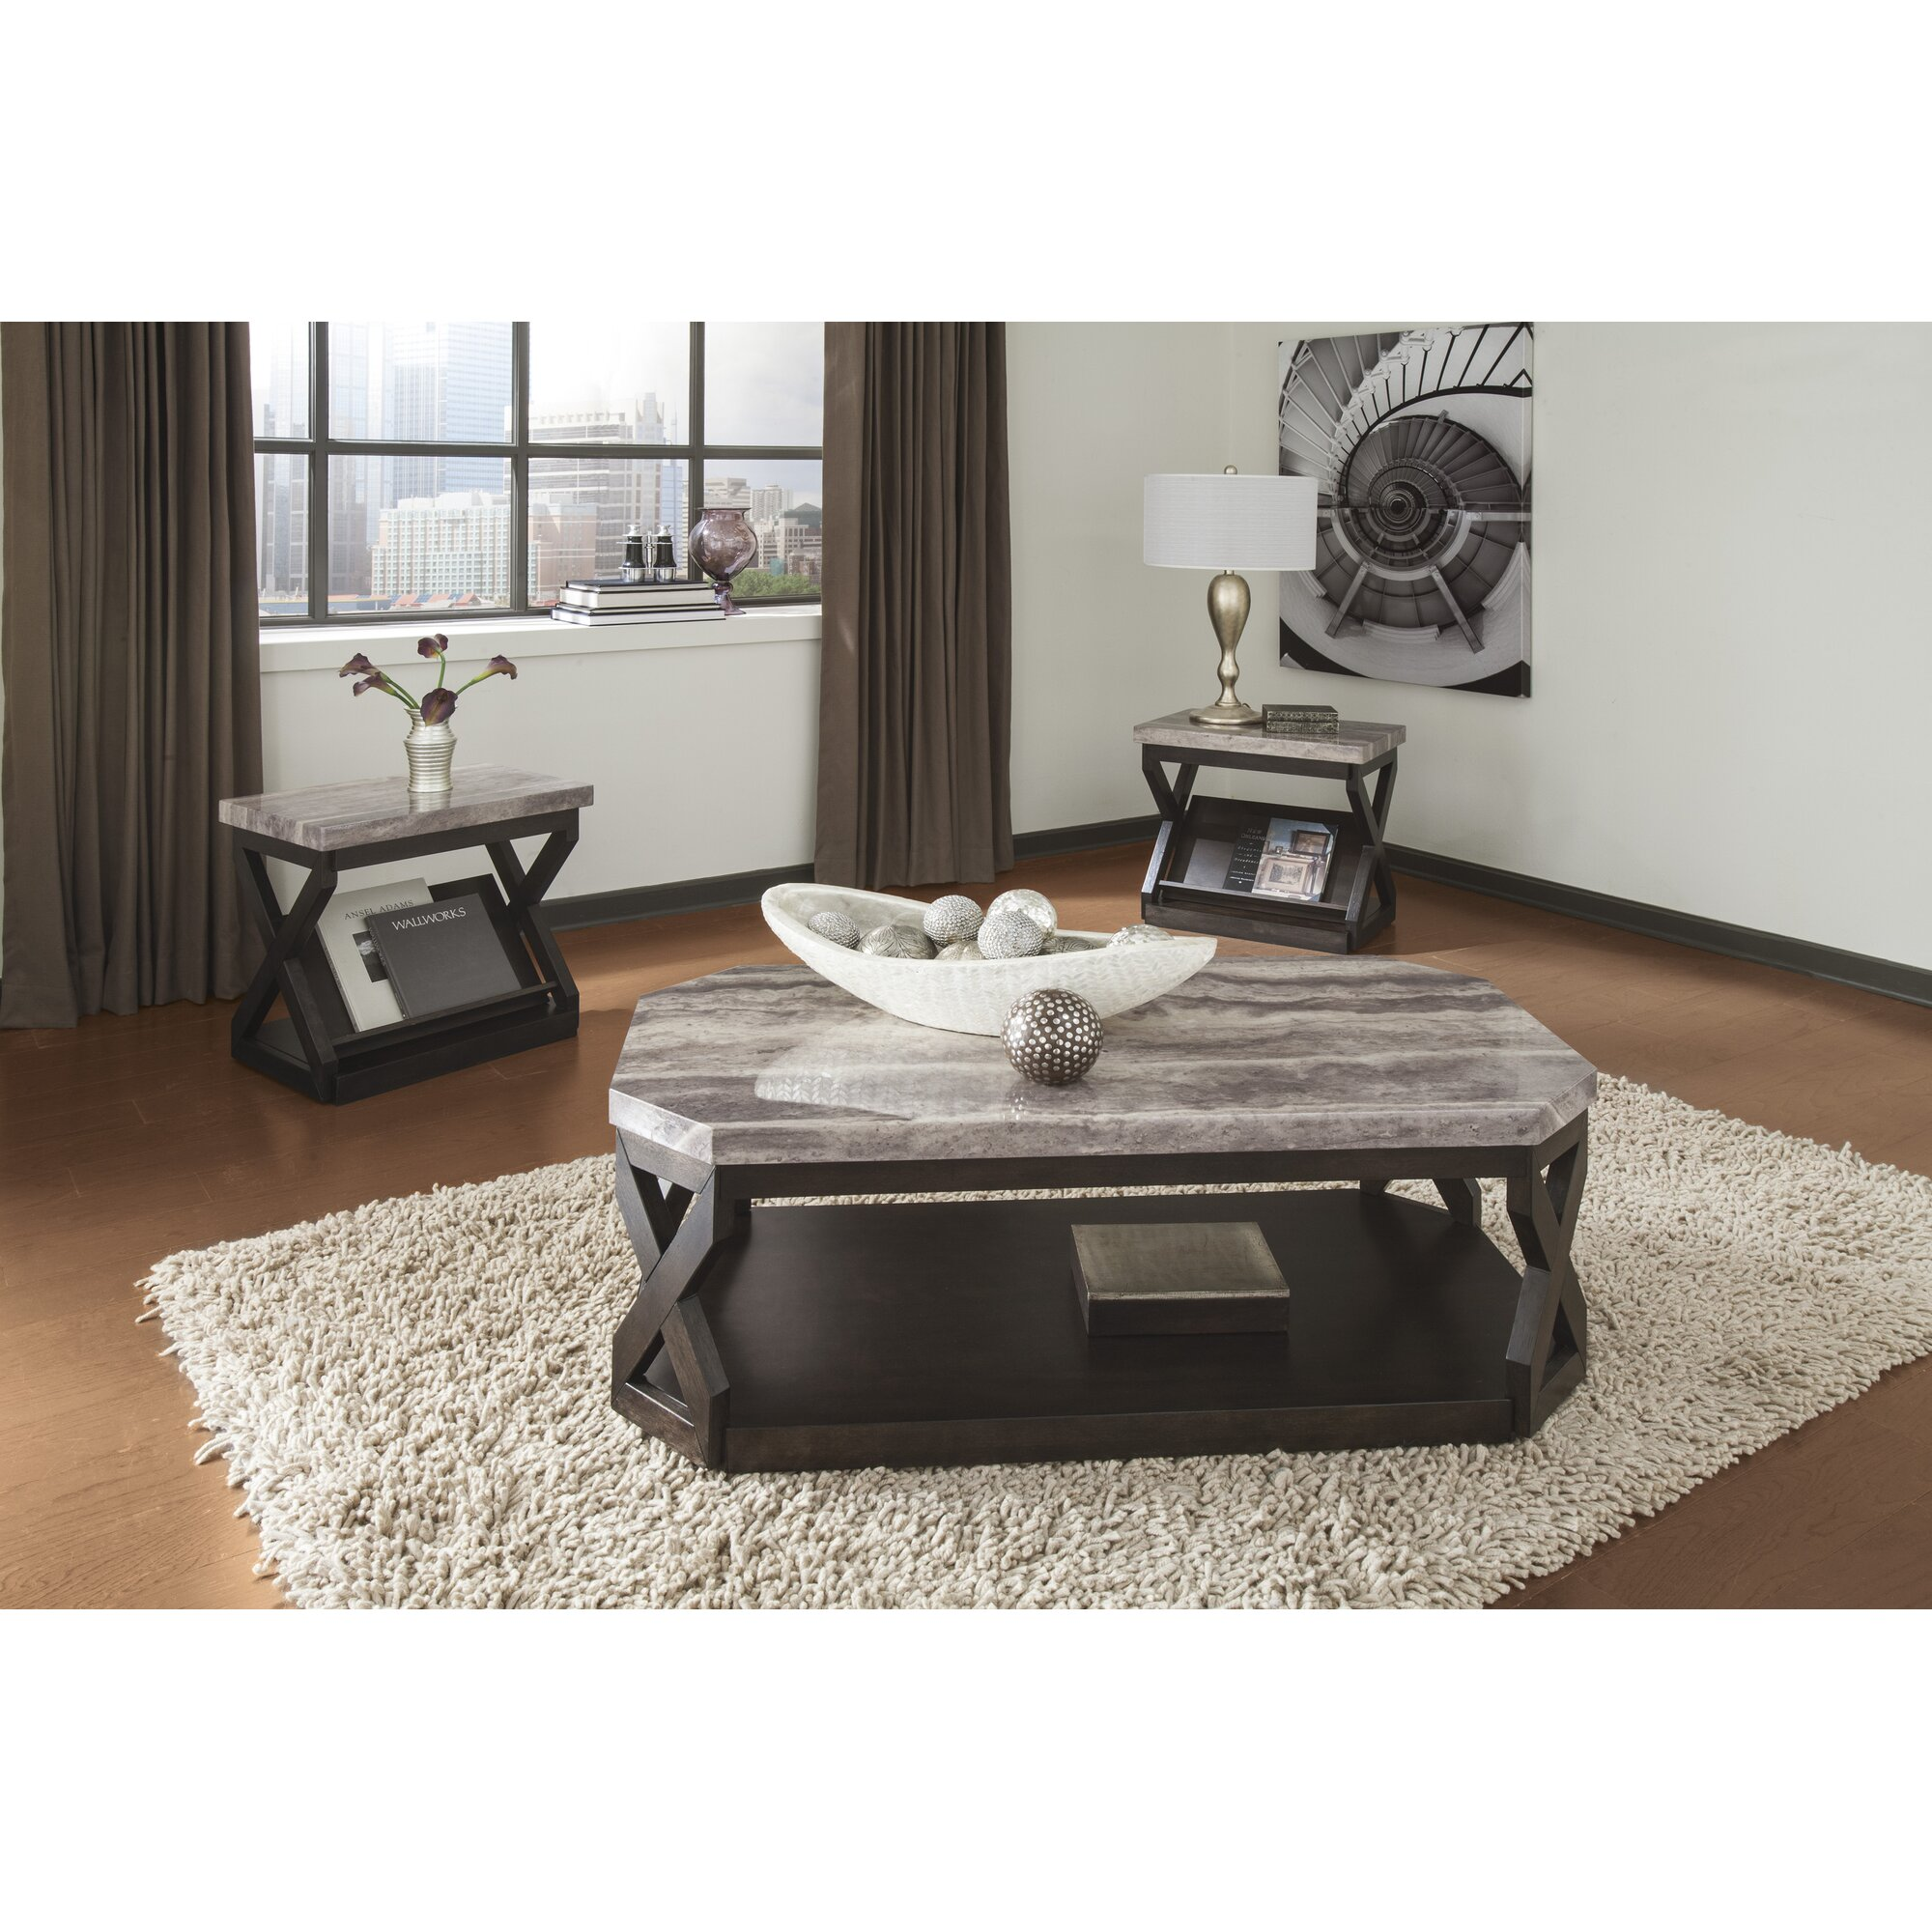 Latitude Run Kelton 3 Piece Coffee Table Set amp Reviews  : Kelton3PieceCoffeeTableSet from www.wayfair.com size 2000 x 2000 jpeg 452kB